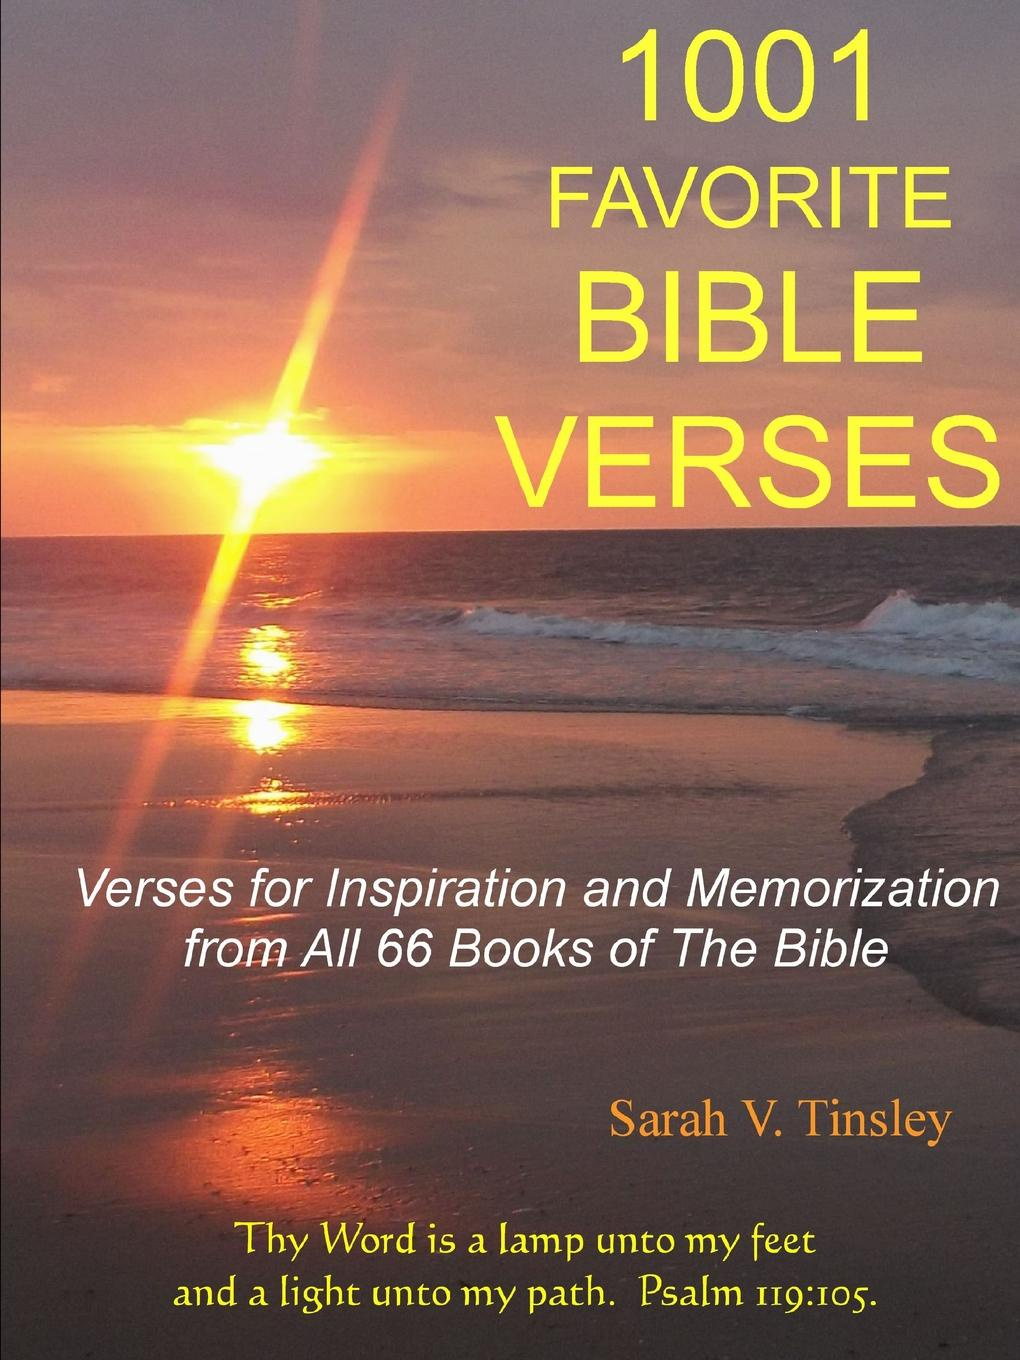 Sarah Tinsley 1001 FAVORITE BIBLE VERSES, Verses for Inspiration and Memorization from All 66 Books of The Bible the divine inspiration of the bible